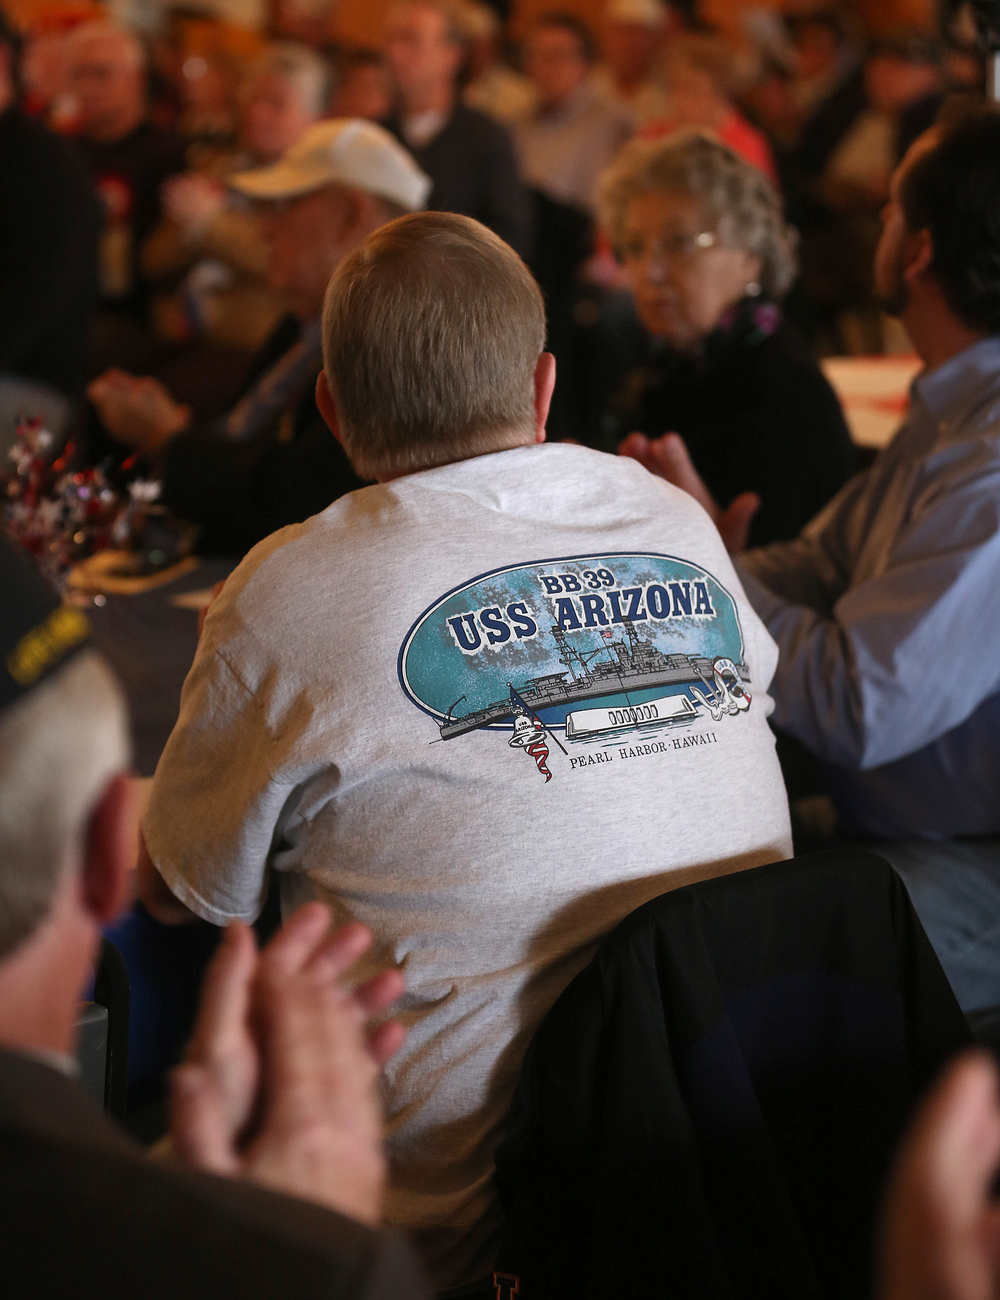 Rob Rister of Dawson wore a Pearl Harbor USS Arizona tee-shirt to the ceremony Sunday. Rister said his father, who spent his career in the Navy, survived the surprise attack at Pearl Harbor while aboard the USS Vestal. A dual ceremony honoring the 73rd anniversary of the attack on American naval forces at Pearl Harbor and the 10th anniversary of the dedication of the World War II memorial in Springfield took place at the Disabled American Veterans Hall at Lake Springfield on Sunday, Dec. 7, 2014. David Spencer/The State Journal-Register